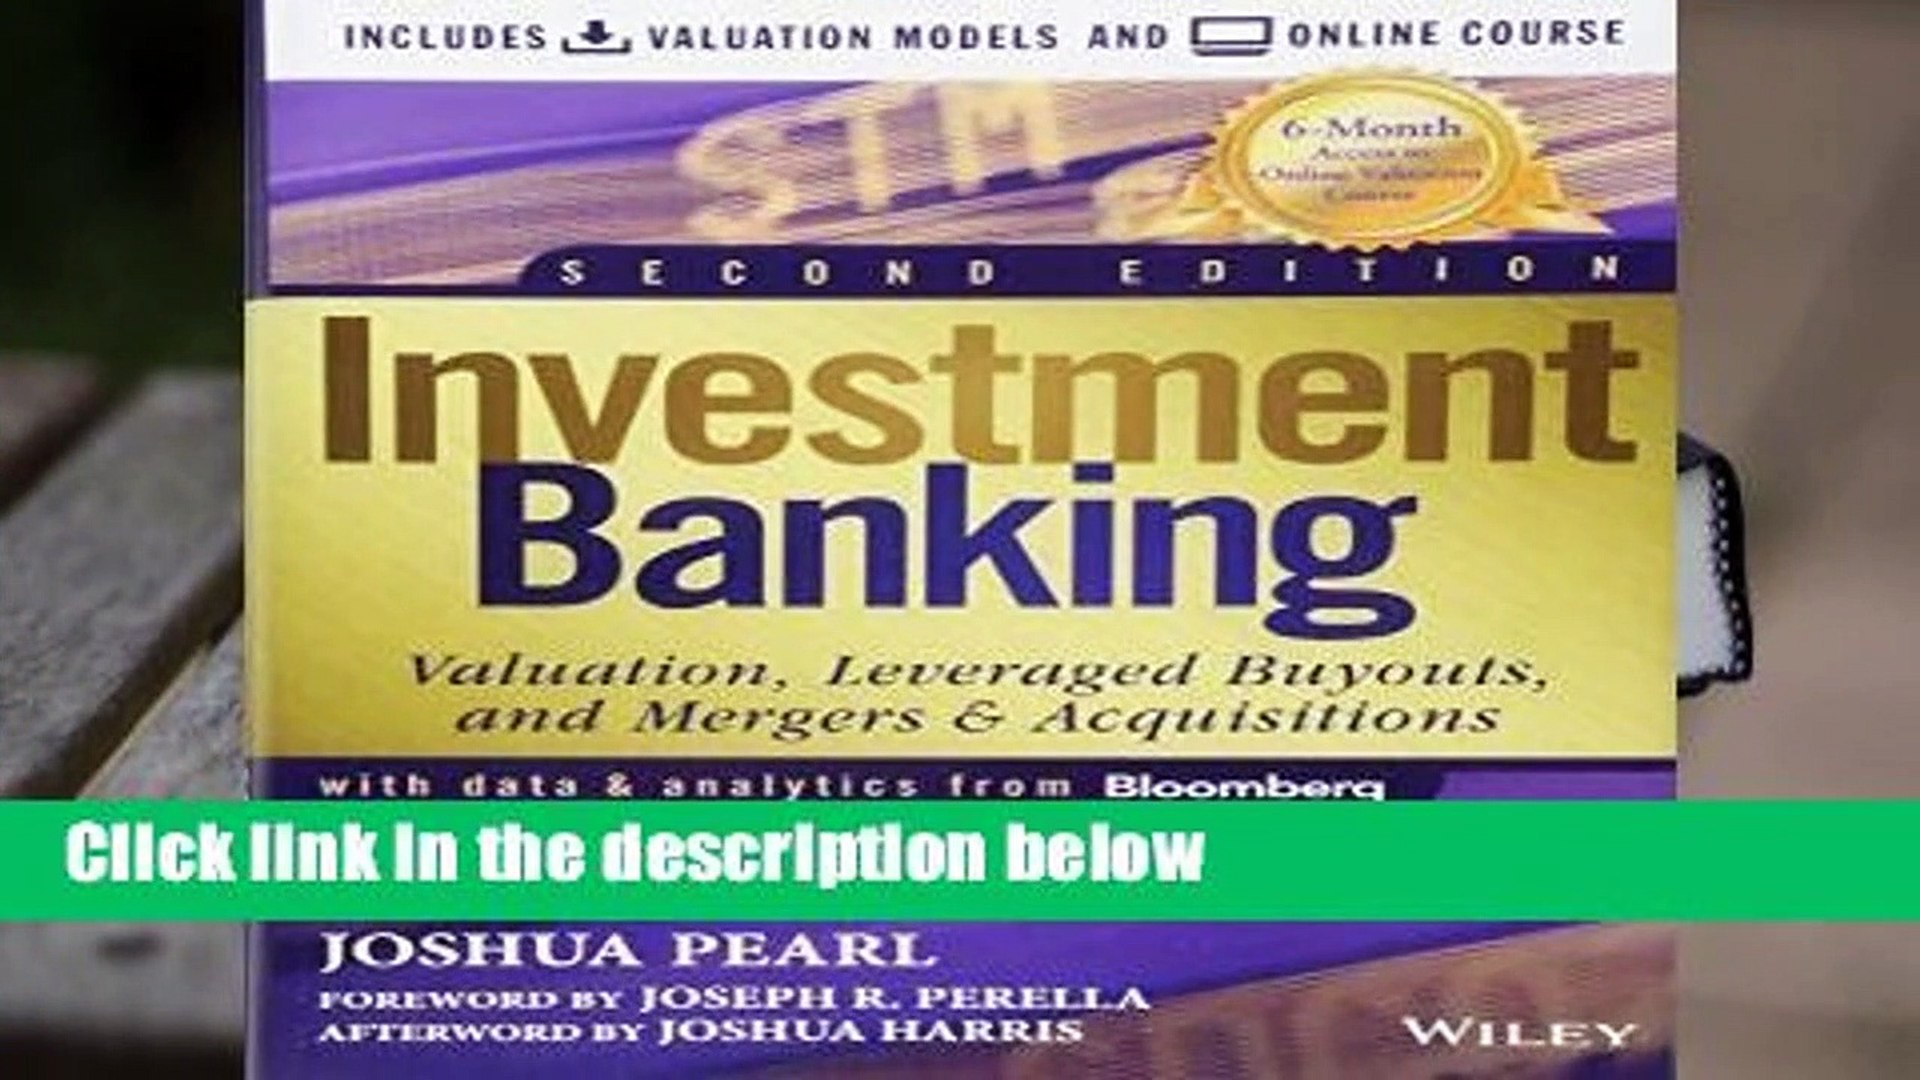 Investment Banking: Valuation Models + Online Course Complete